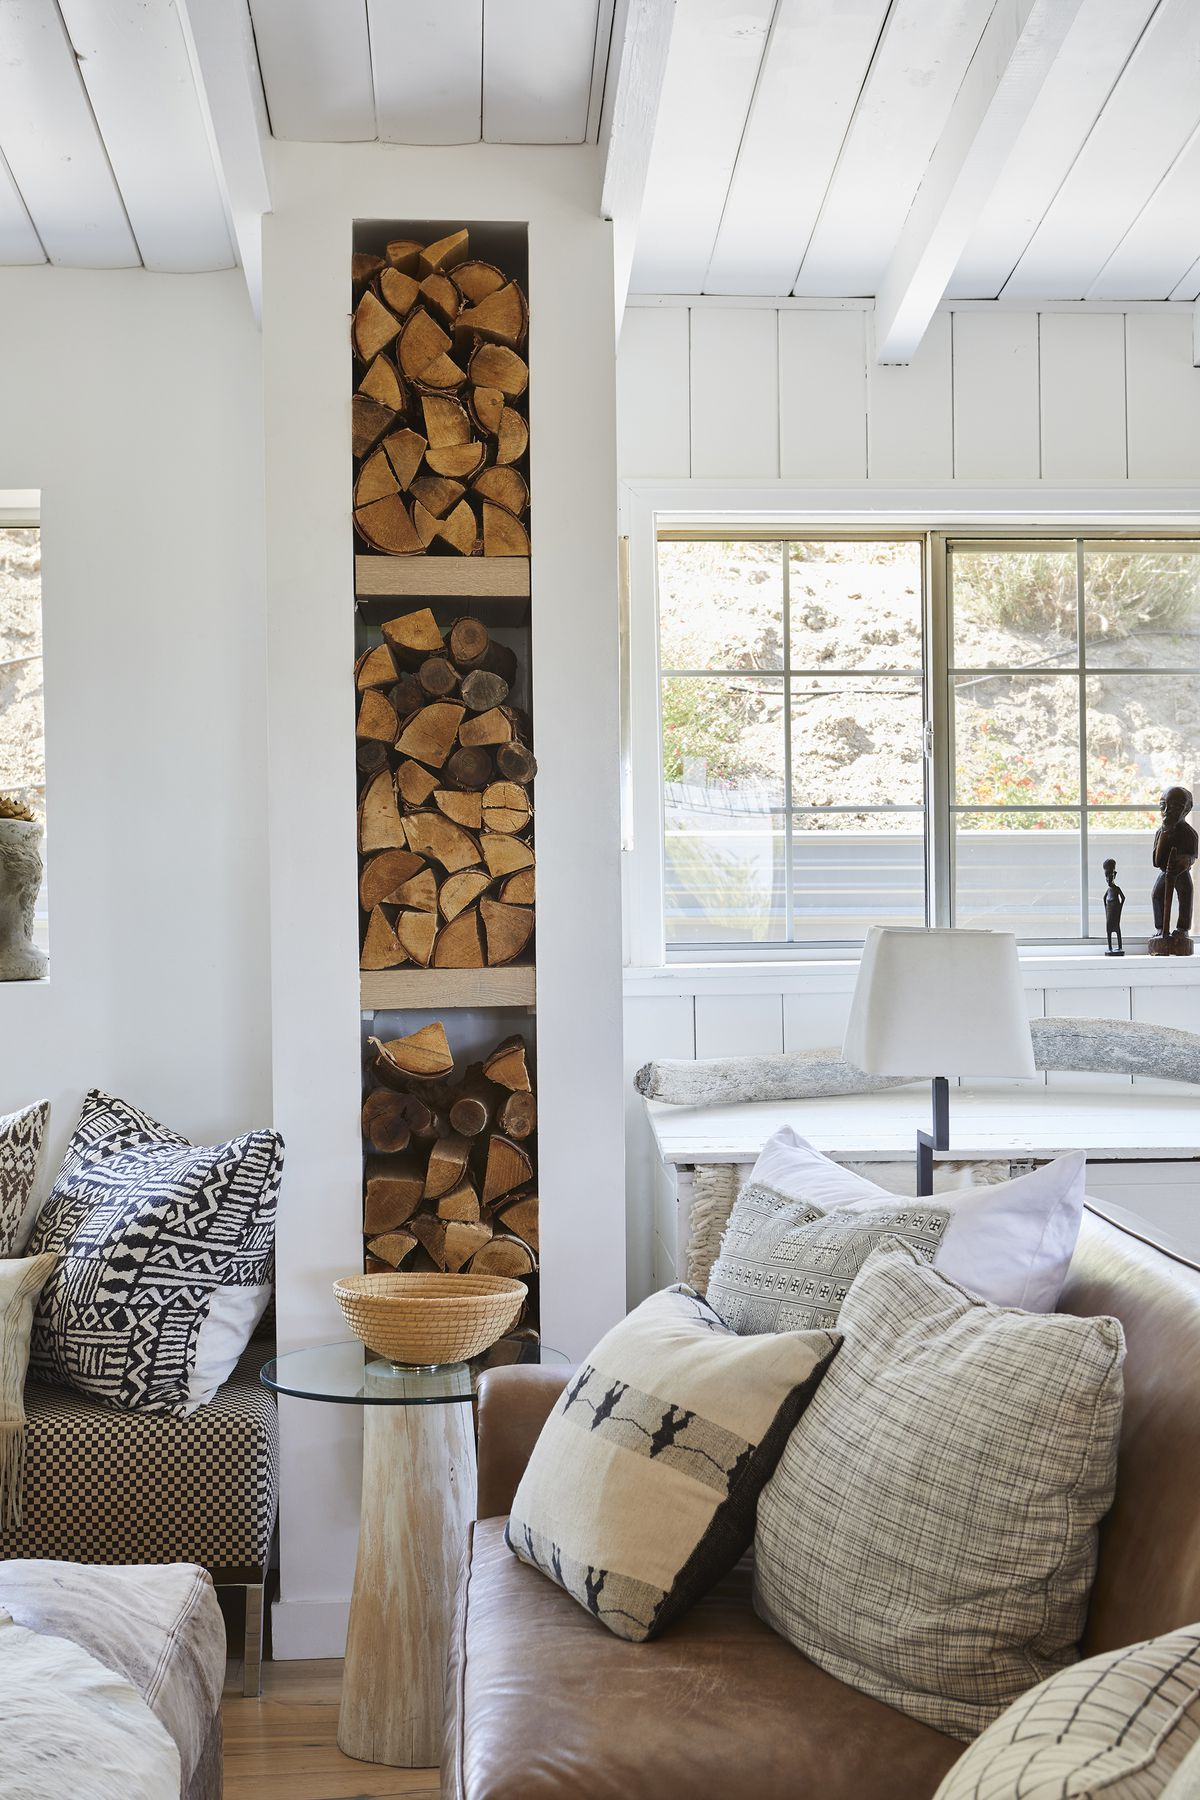 A tall, white wood-storage system separates white paneled walls and smooth drywall. Stacks of firewood fill the shelves.